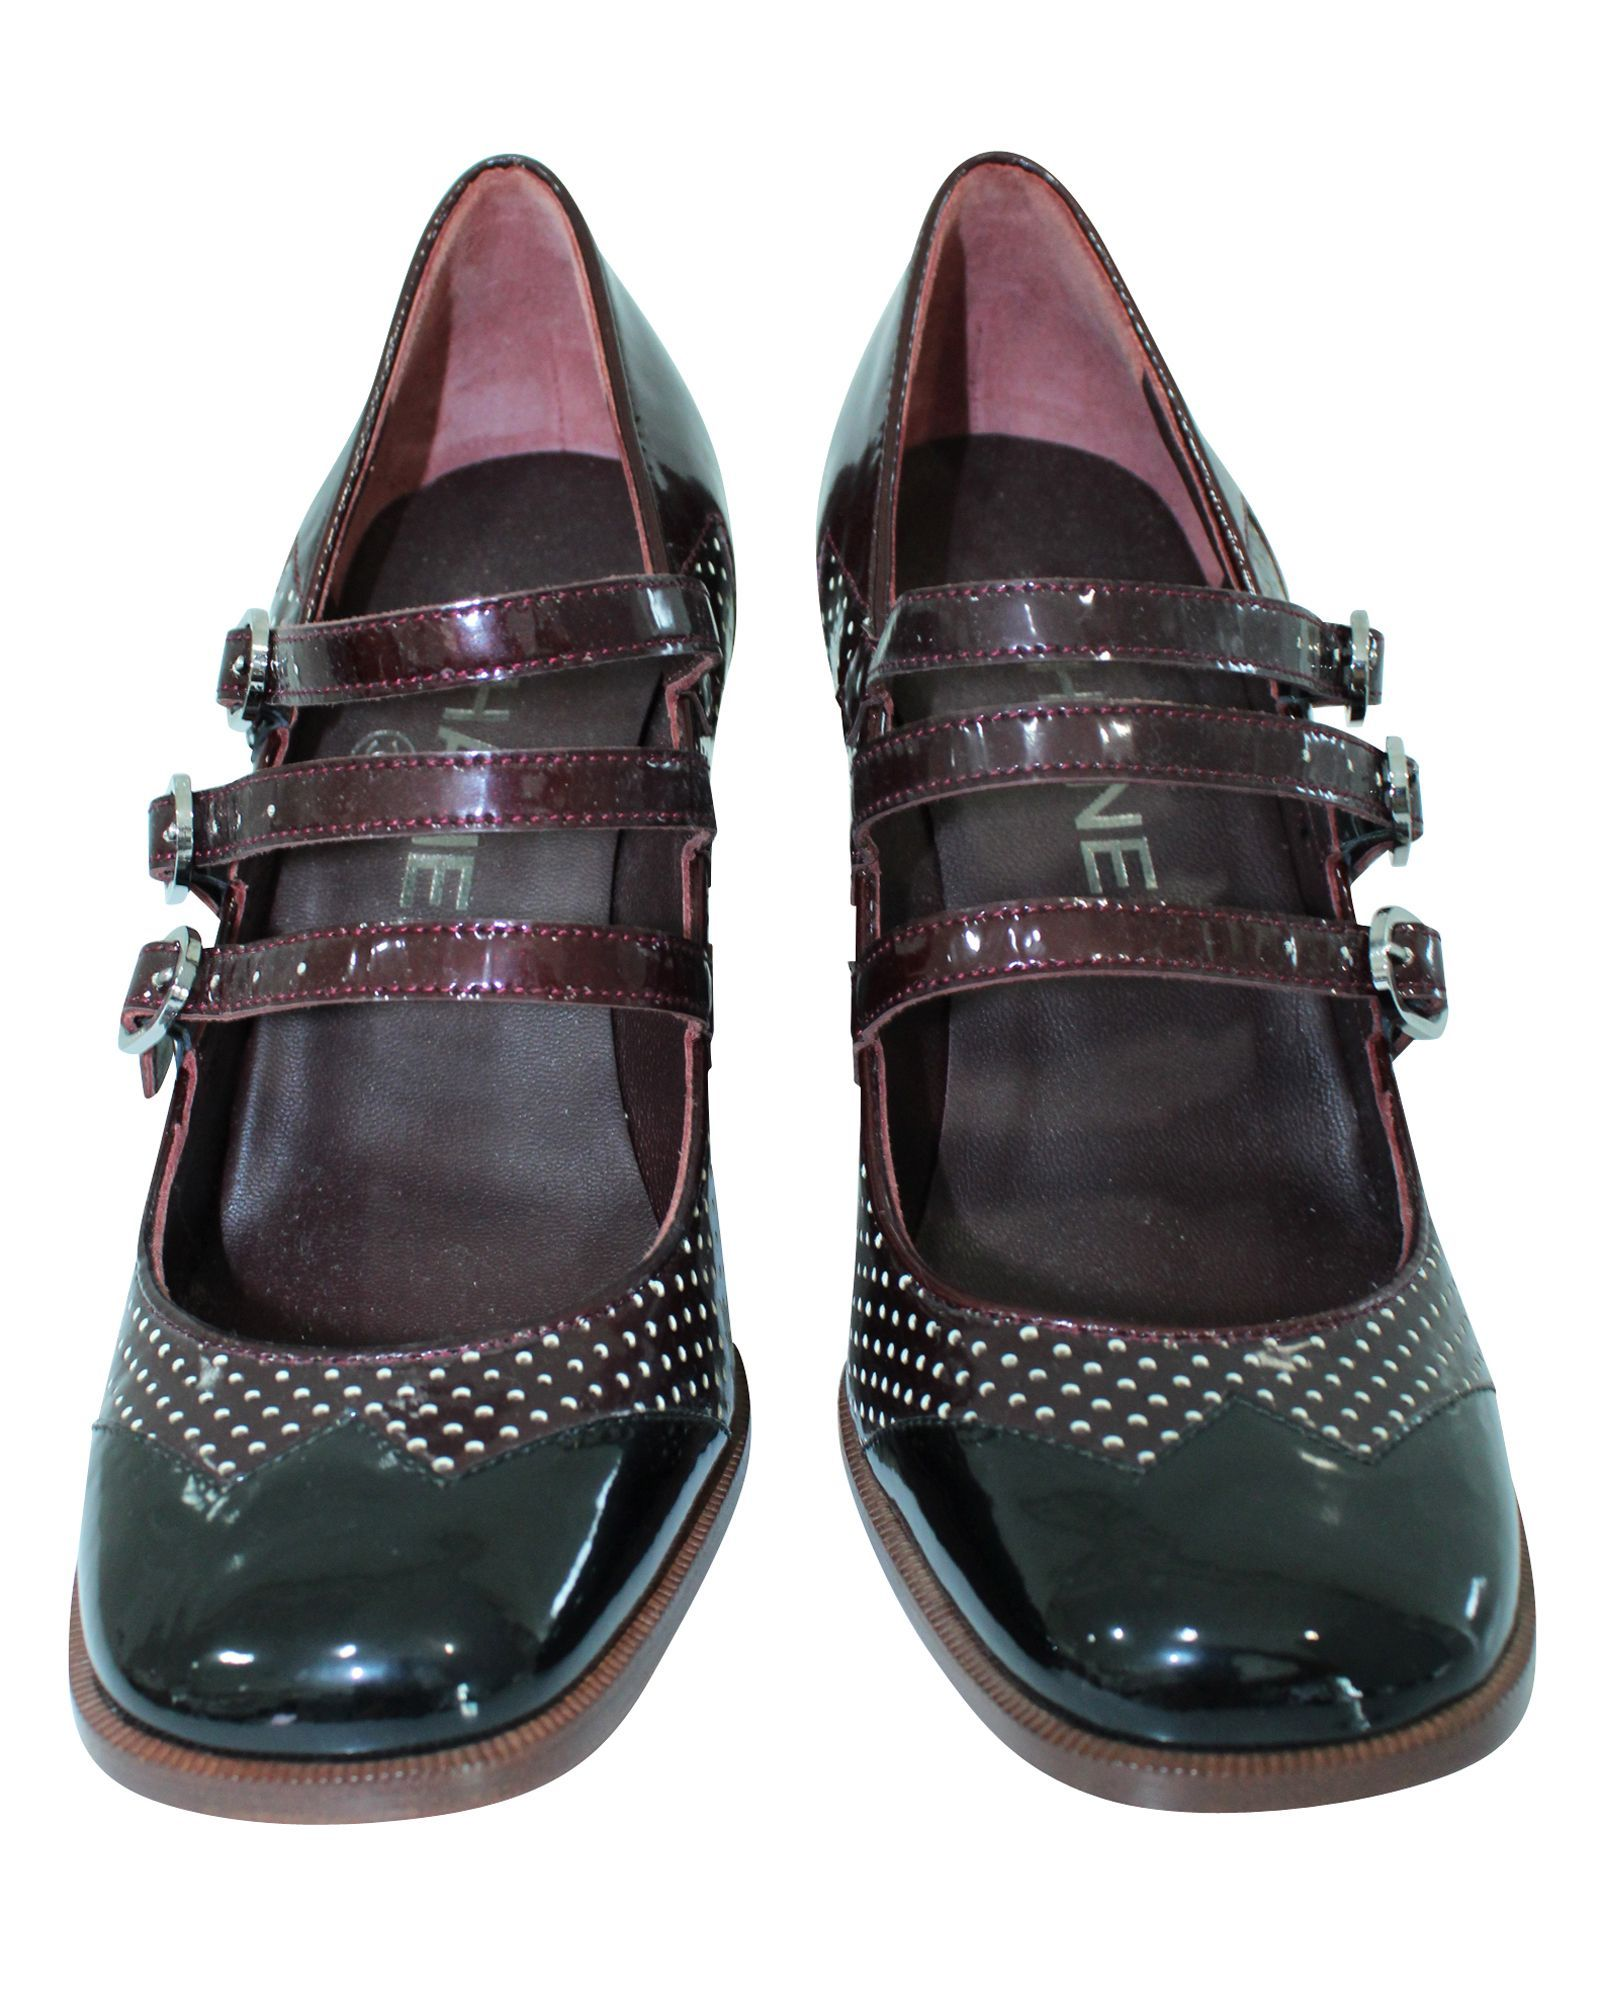 Chanel Black & Burgundy Block Heel Pumps -Pre Owned Condition Excellent